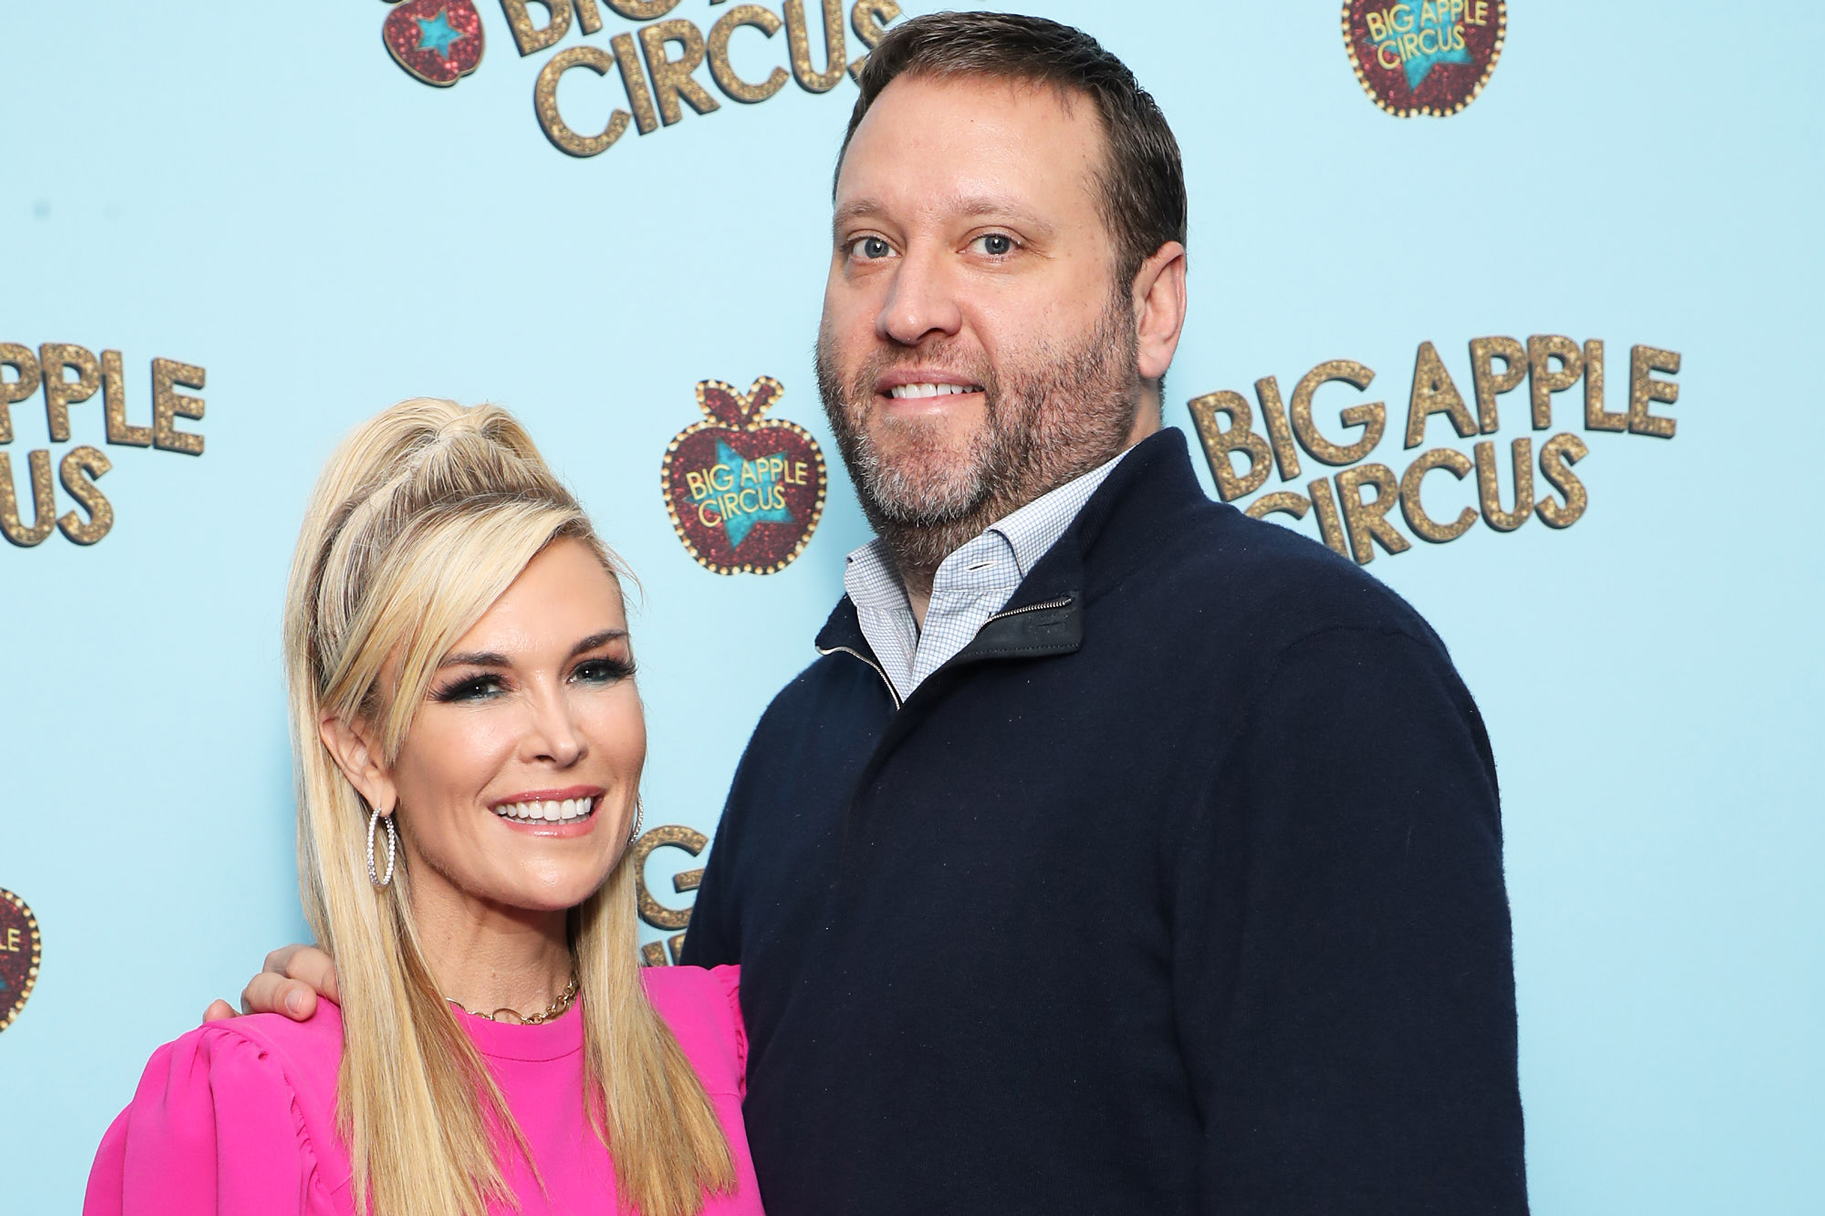 Tinsley Mortimer Scott Kluth Circus